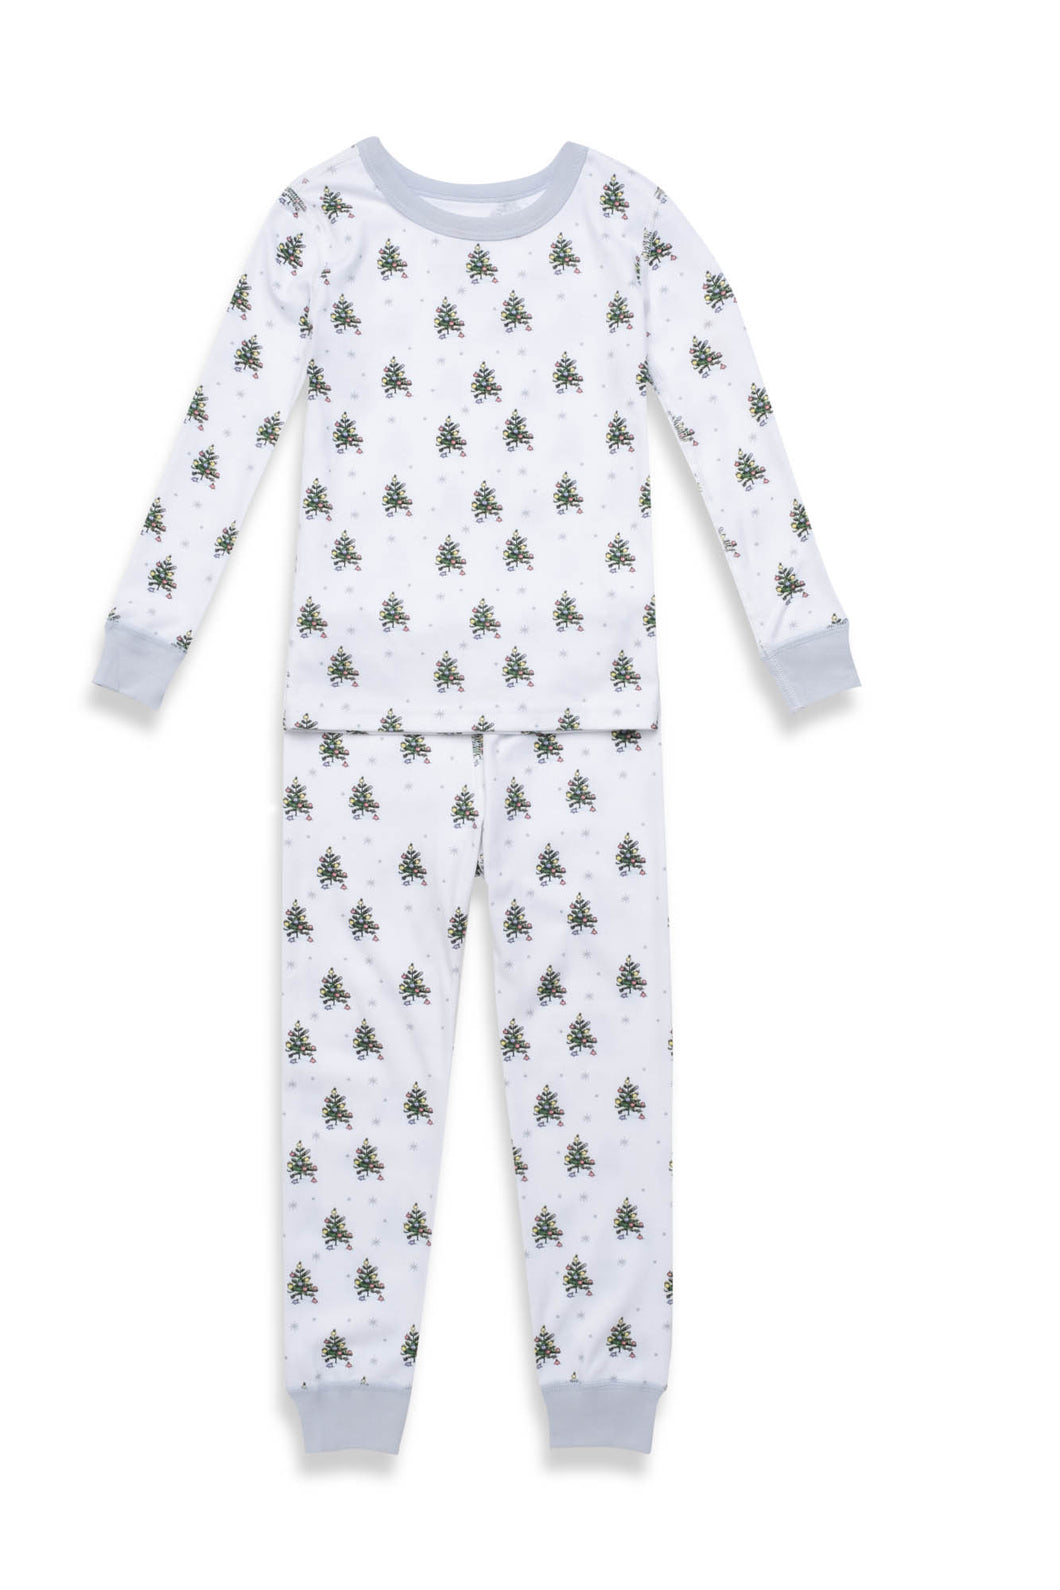 Lil' Christmas Tree Pajamas